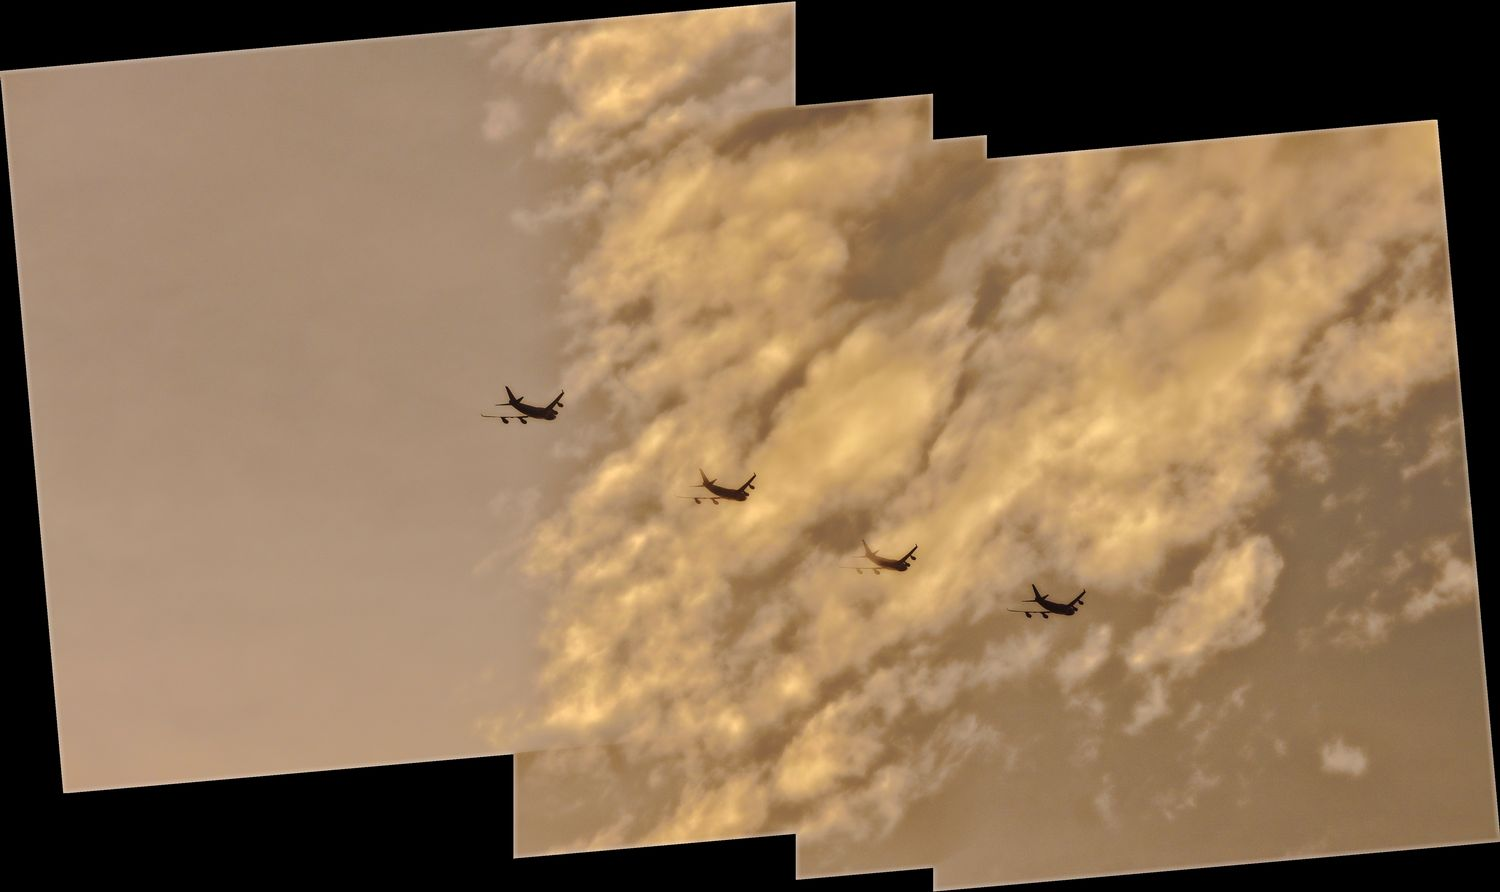 Sky caravan. A panorama of an airplane with clouds. - Saving Air Force One - - art  - photography - by Tony Karp